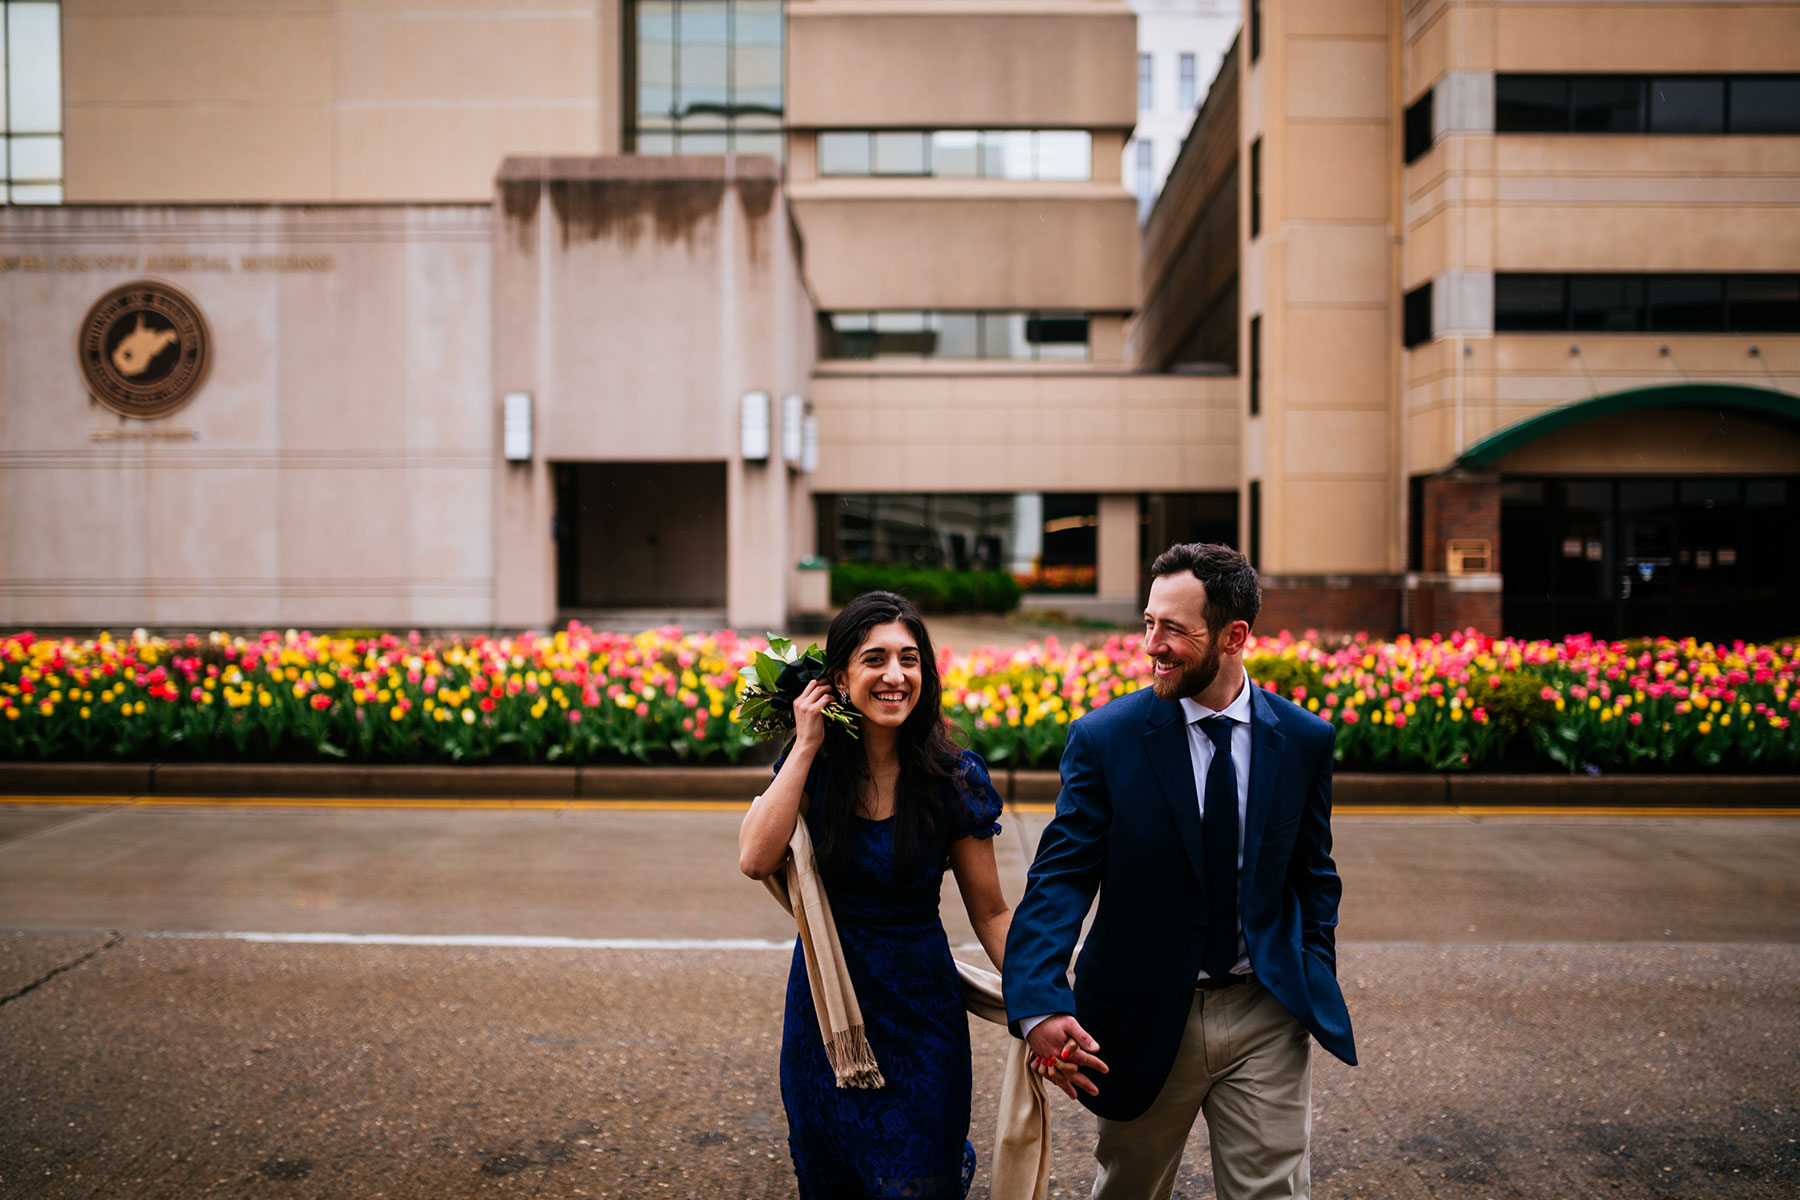 charleston wv courthouse elopement just married